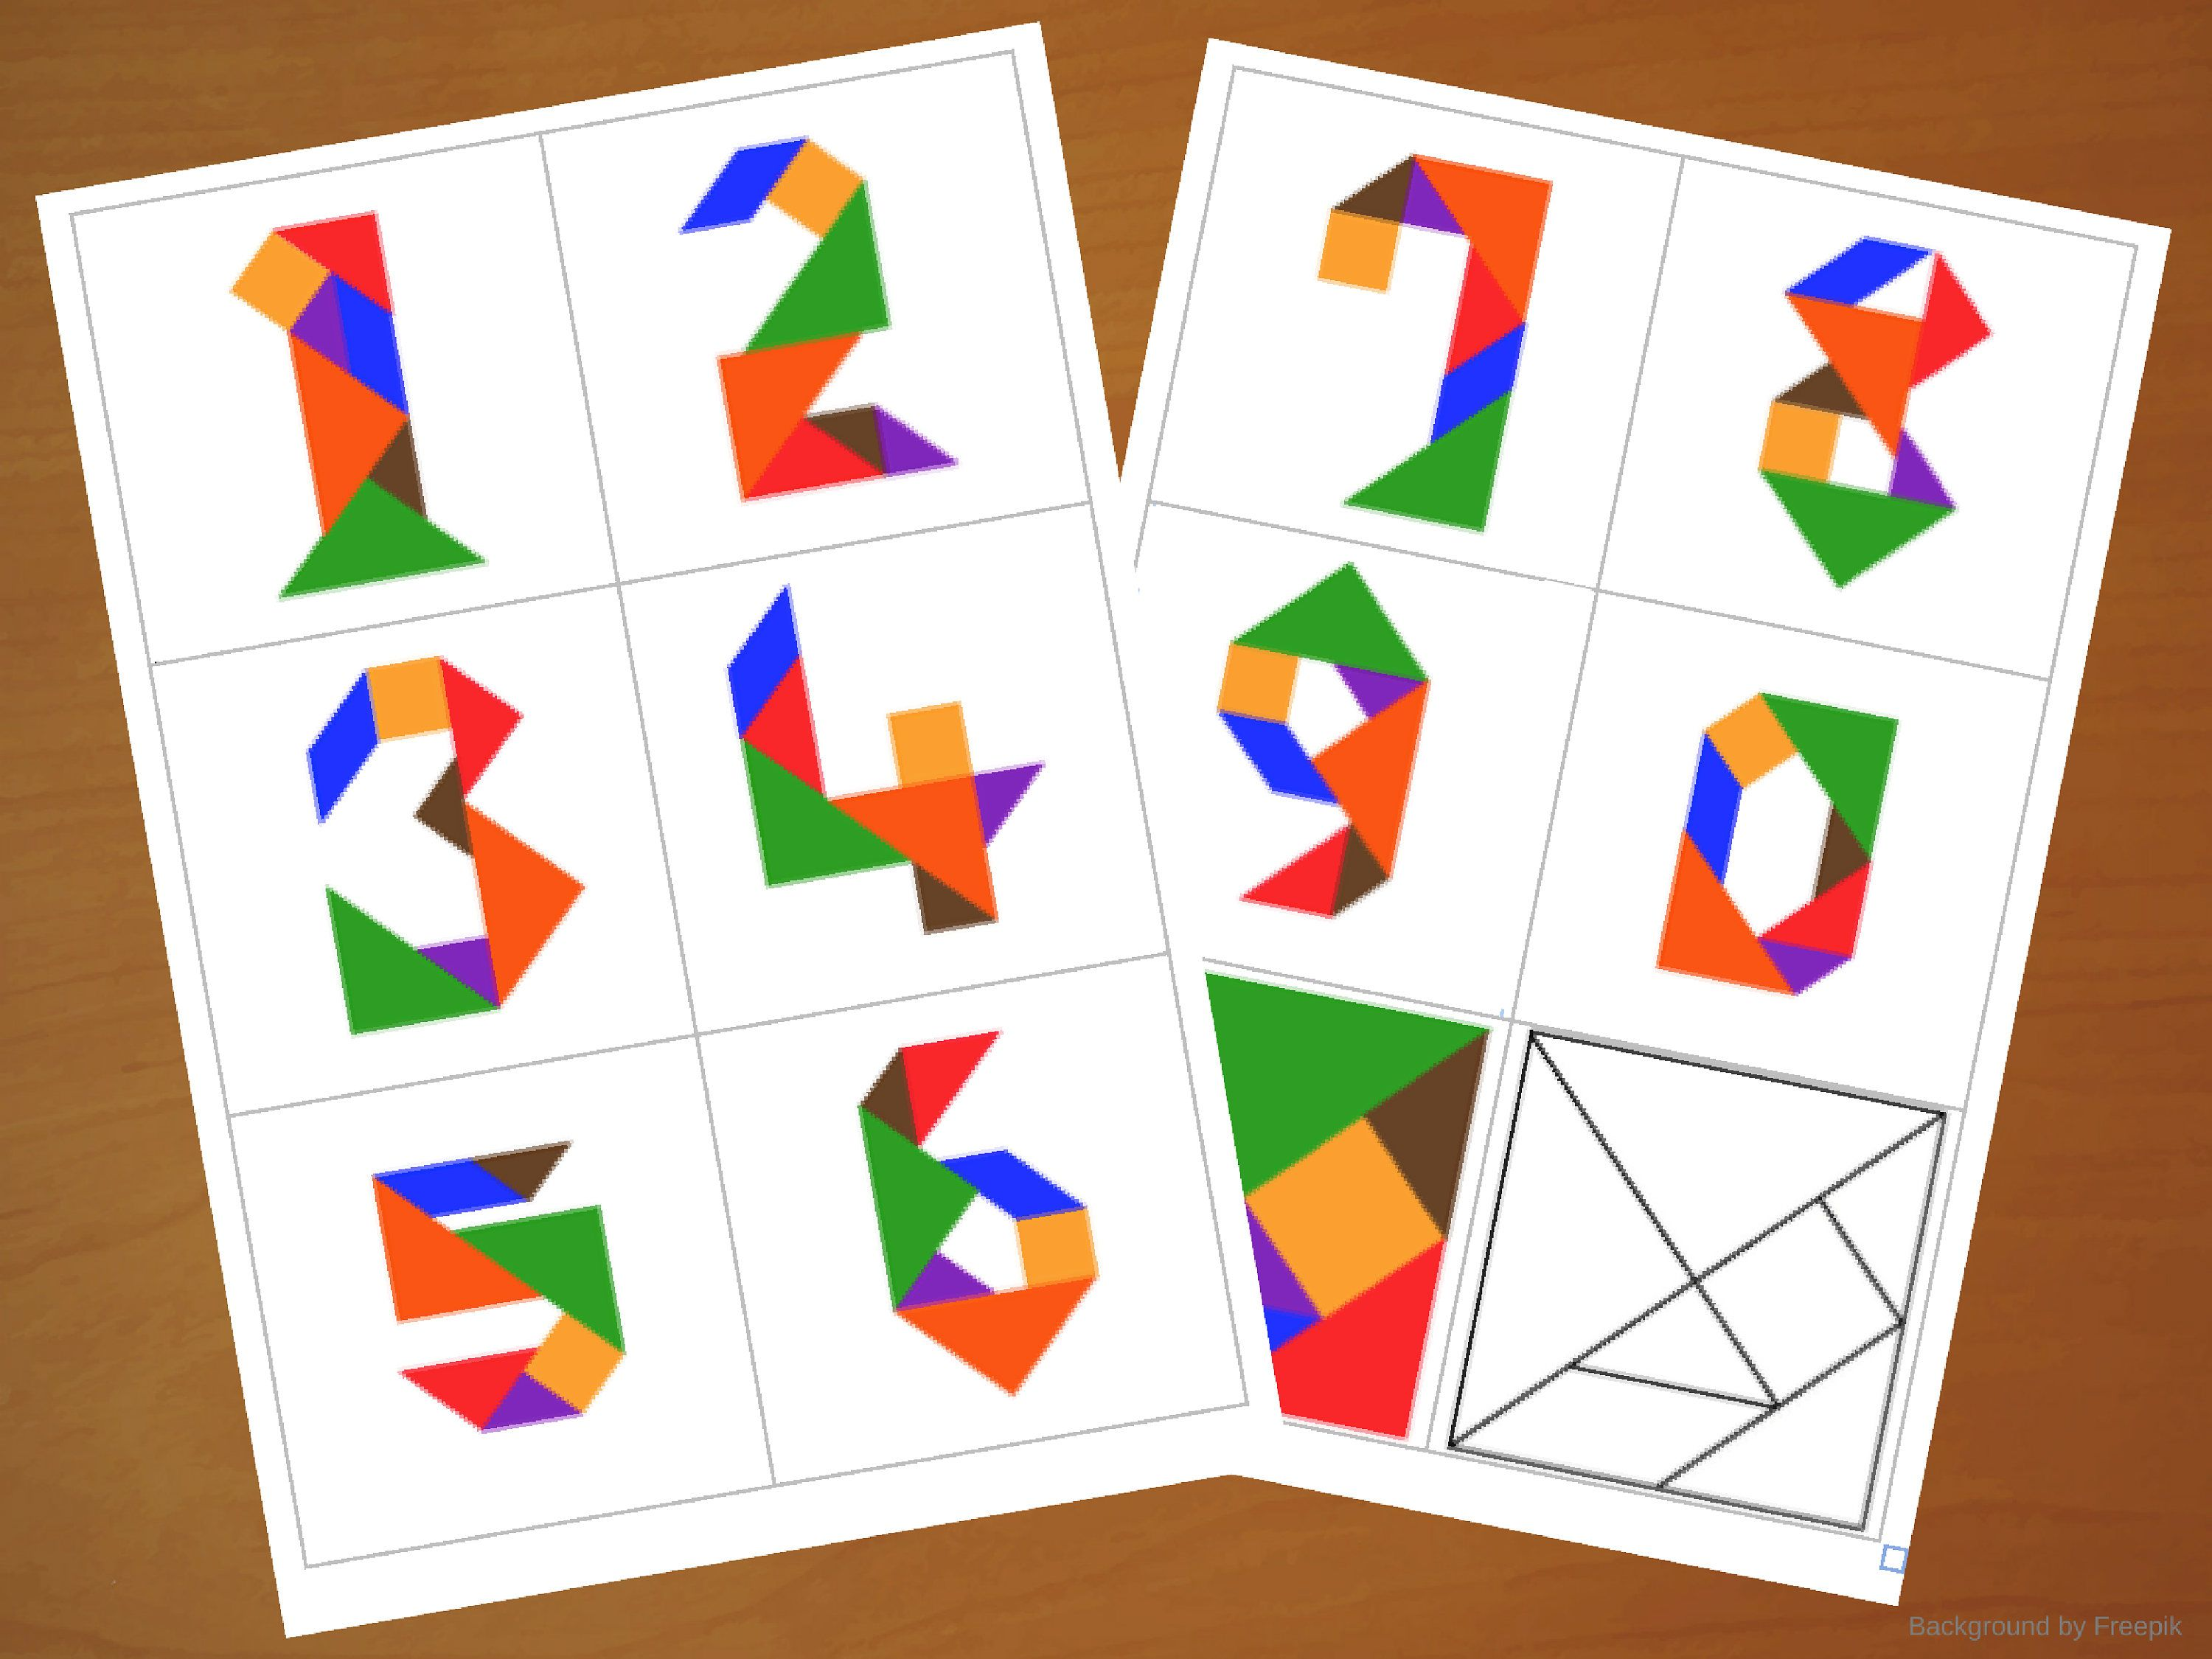 hight resolution of Downloadable Tangram Cards - Tangram Numbers - Tangram Puzzles - Shape  Activities - Puzzle for Kids - Downloadable Game - Print…   Shapes  activities